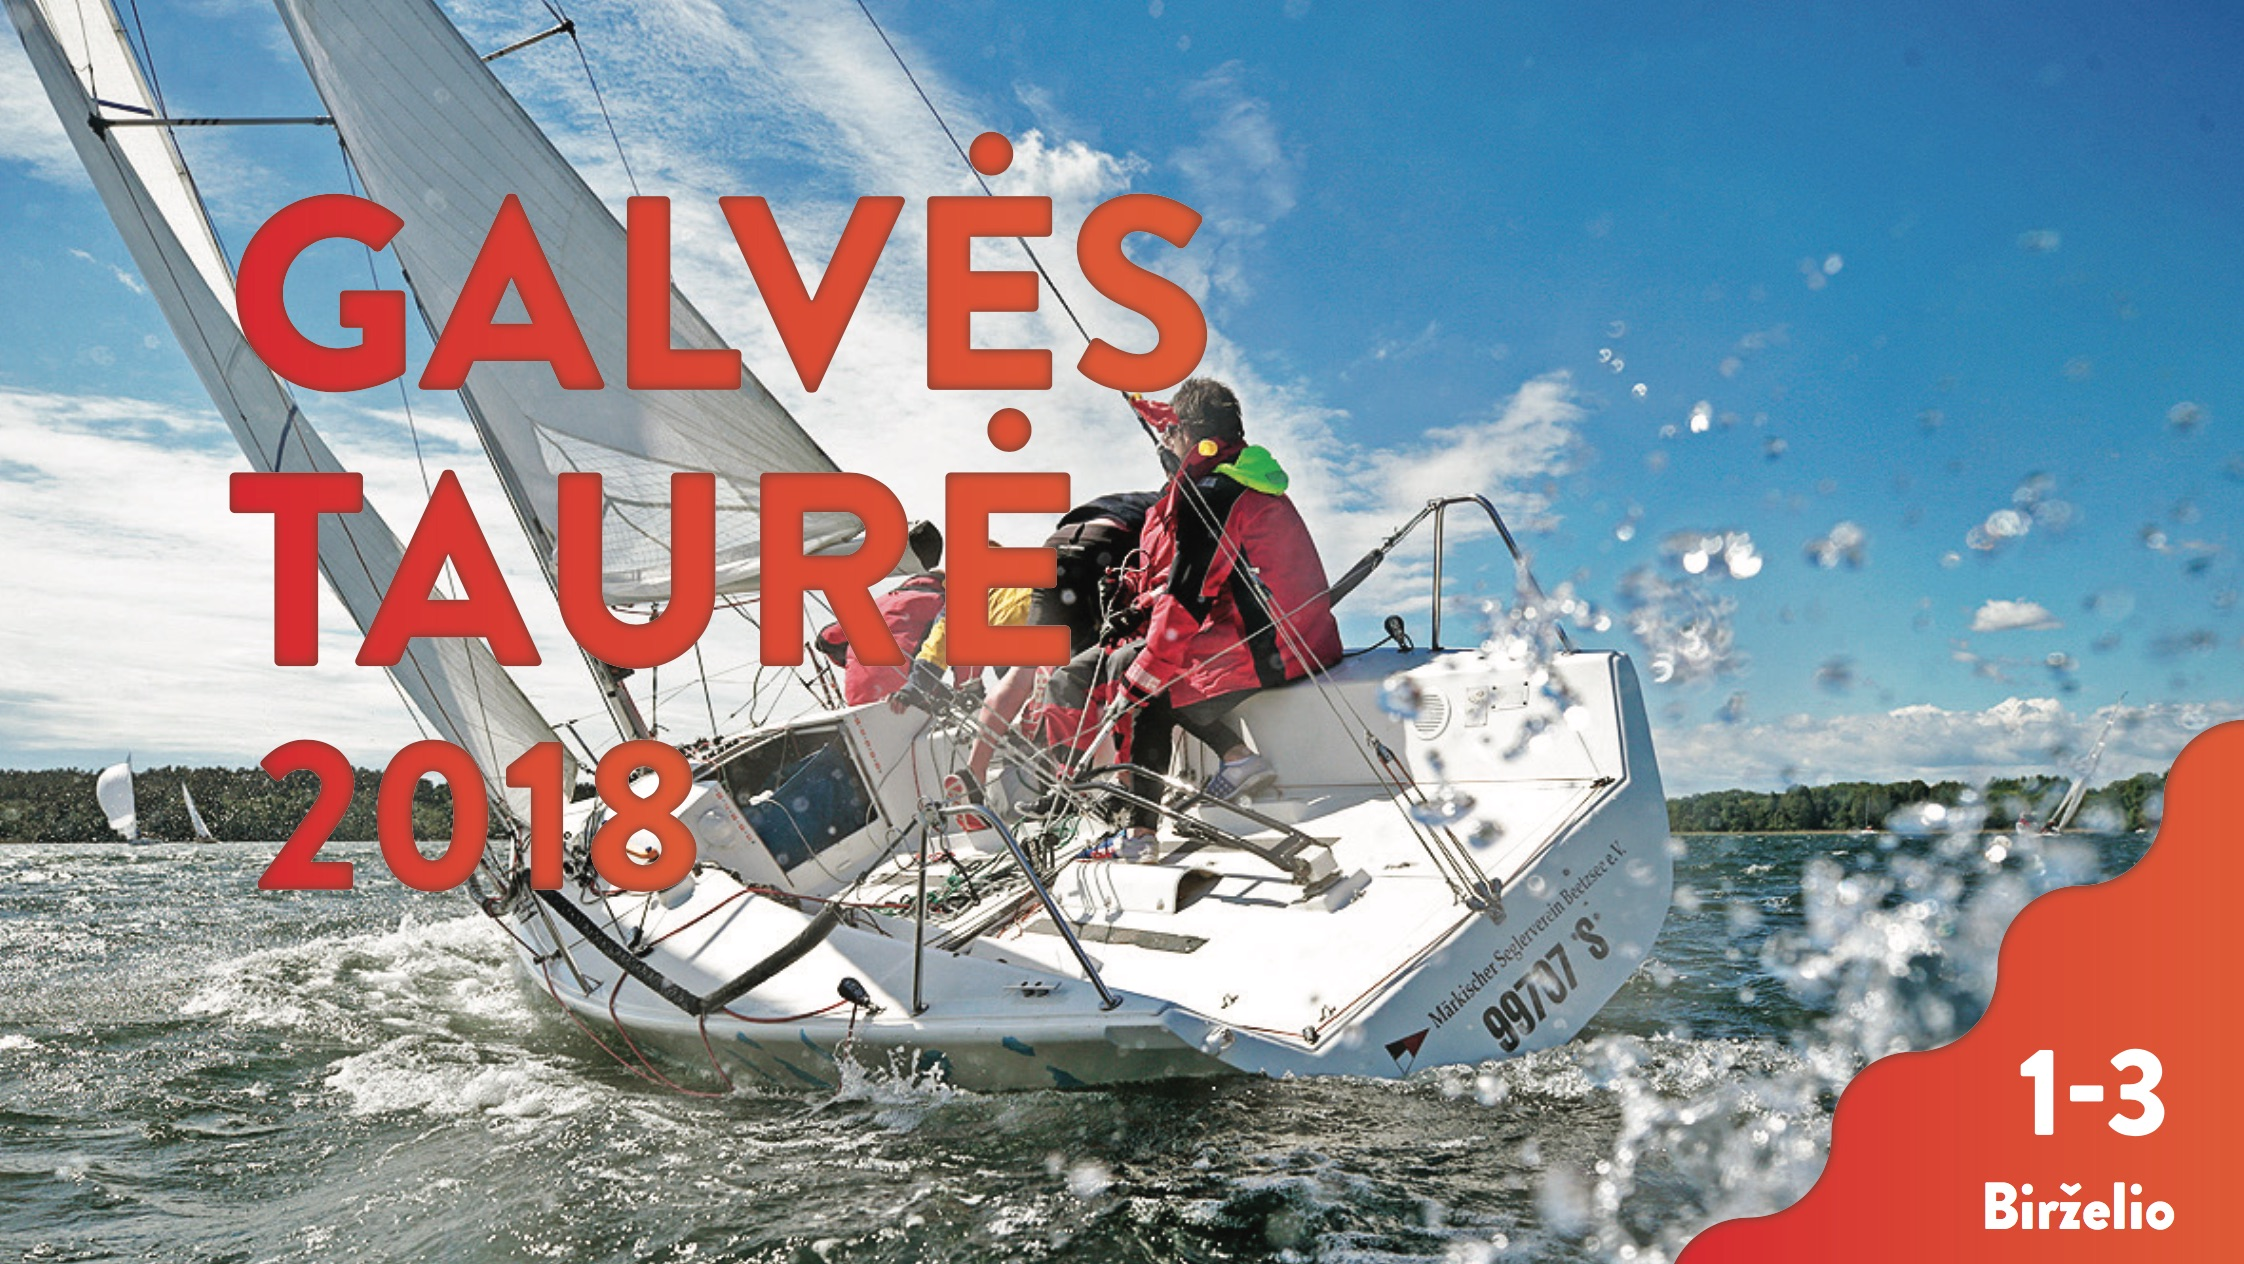 Galves Taure 2018 Notice of Race